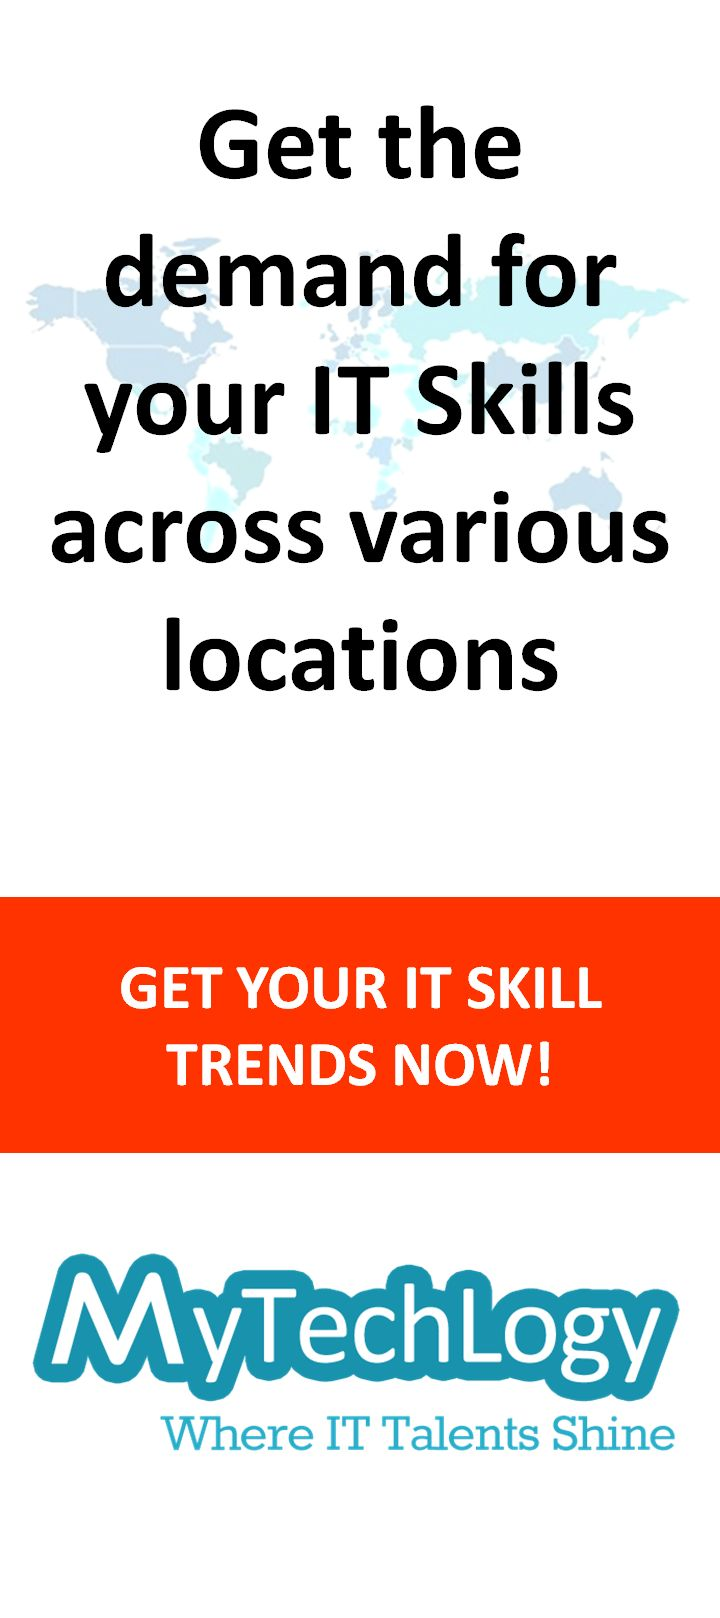 Do you know which of your IT skills could help you in your career progression? Get the demand for your IT skills across various locations on MyTechLogy now! Visit http://www.mytechlogy.com/  #skilltrends #jobtrends #careerprogression